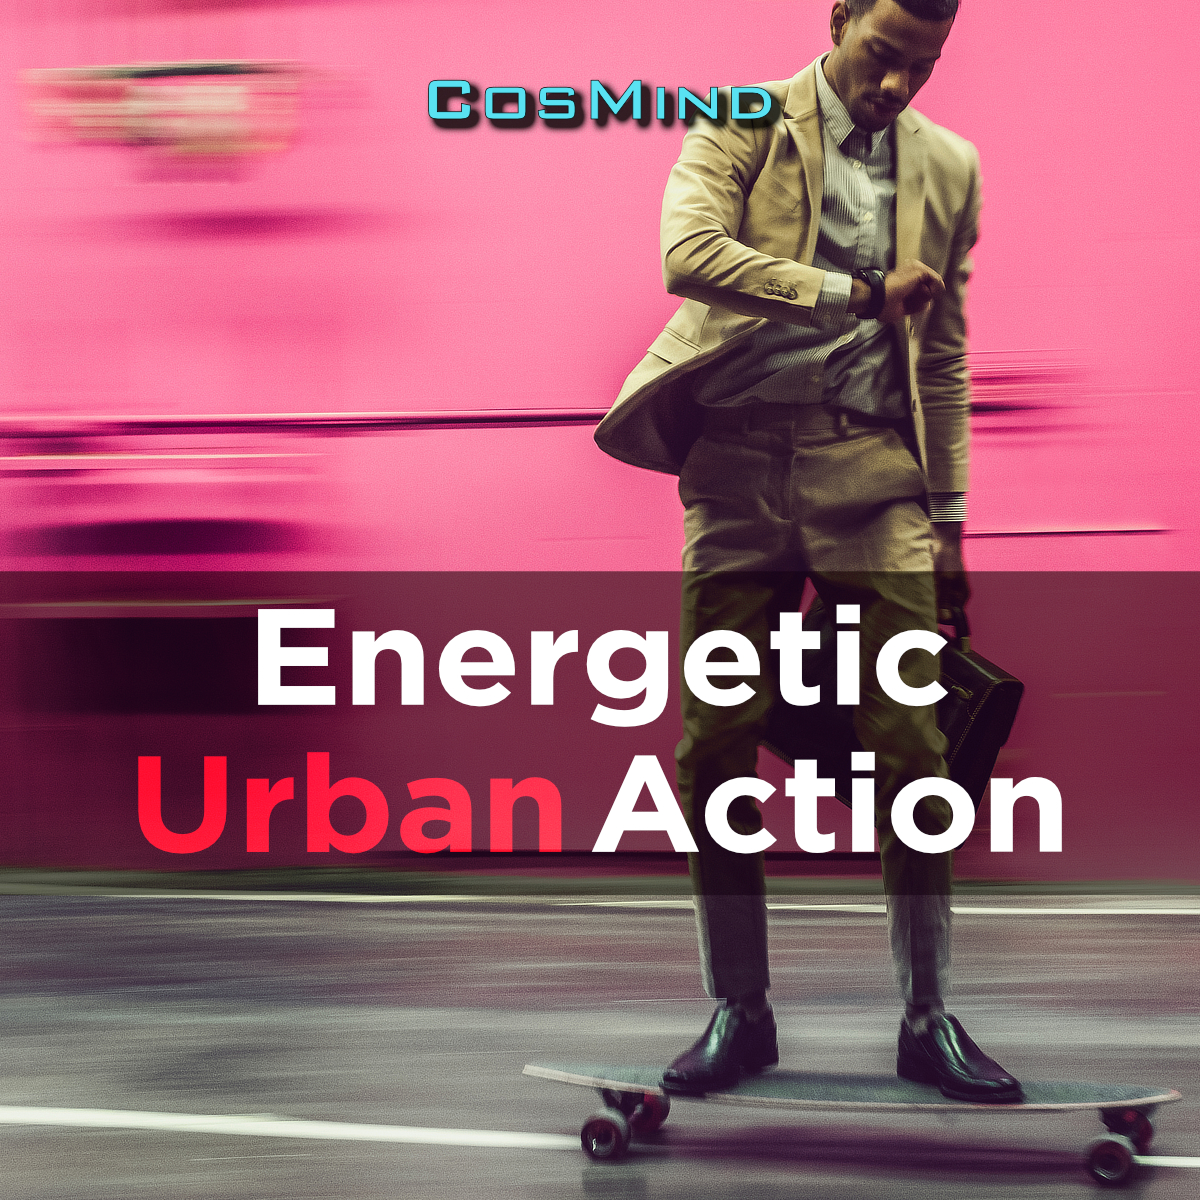 Energetic Urban Action